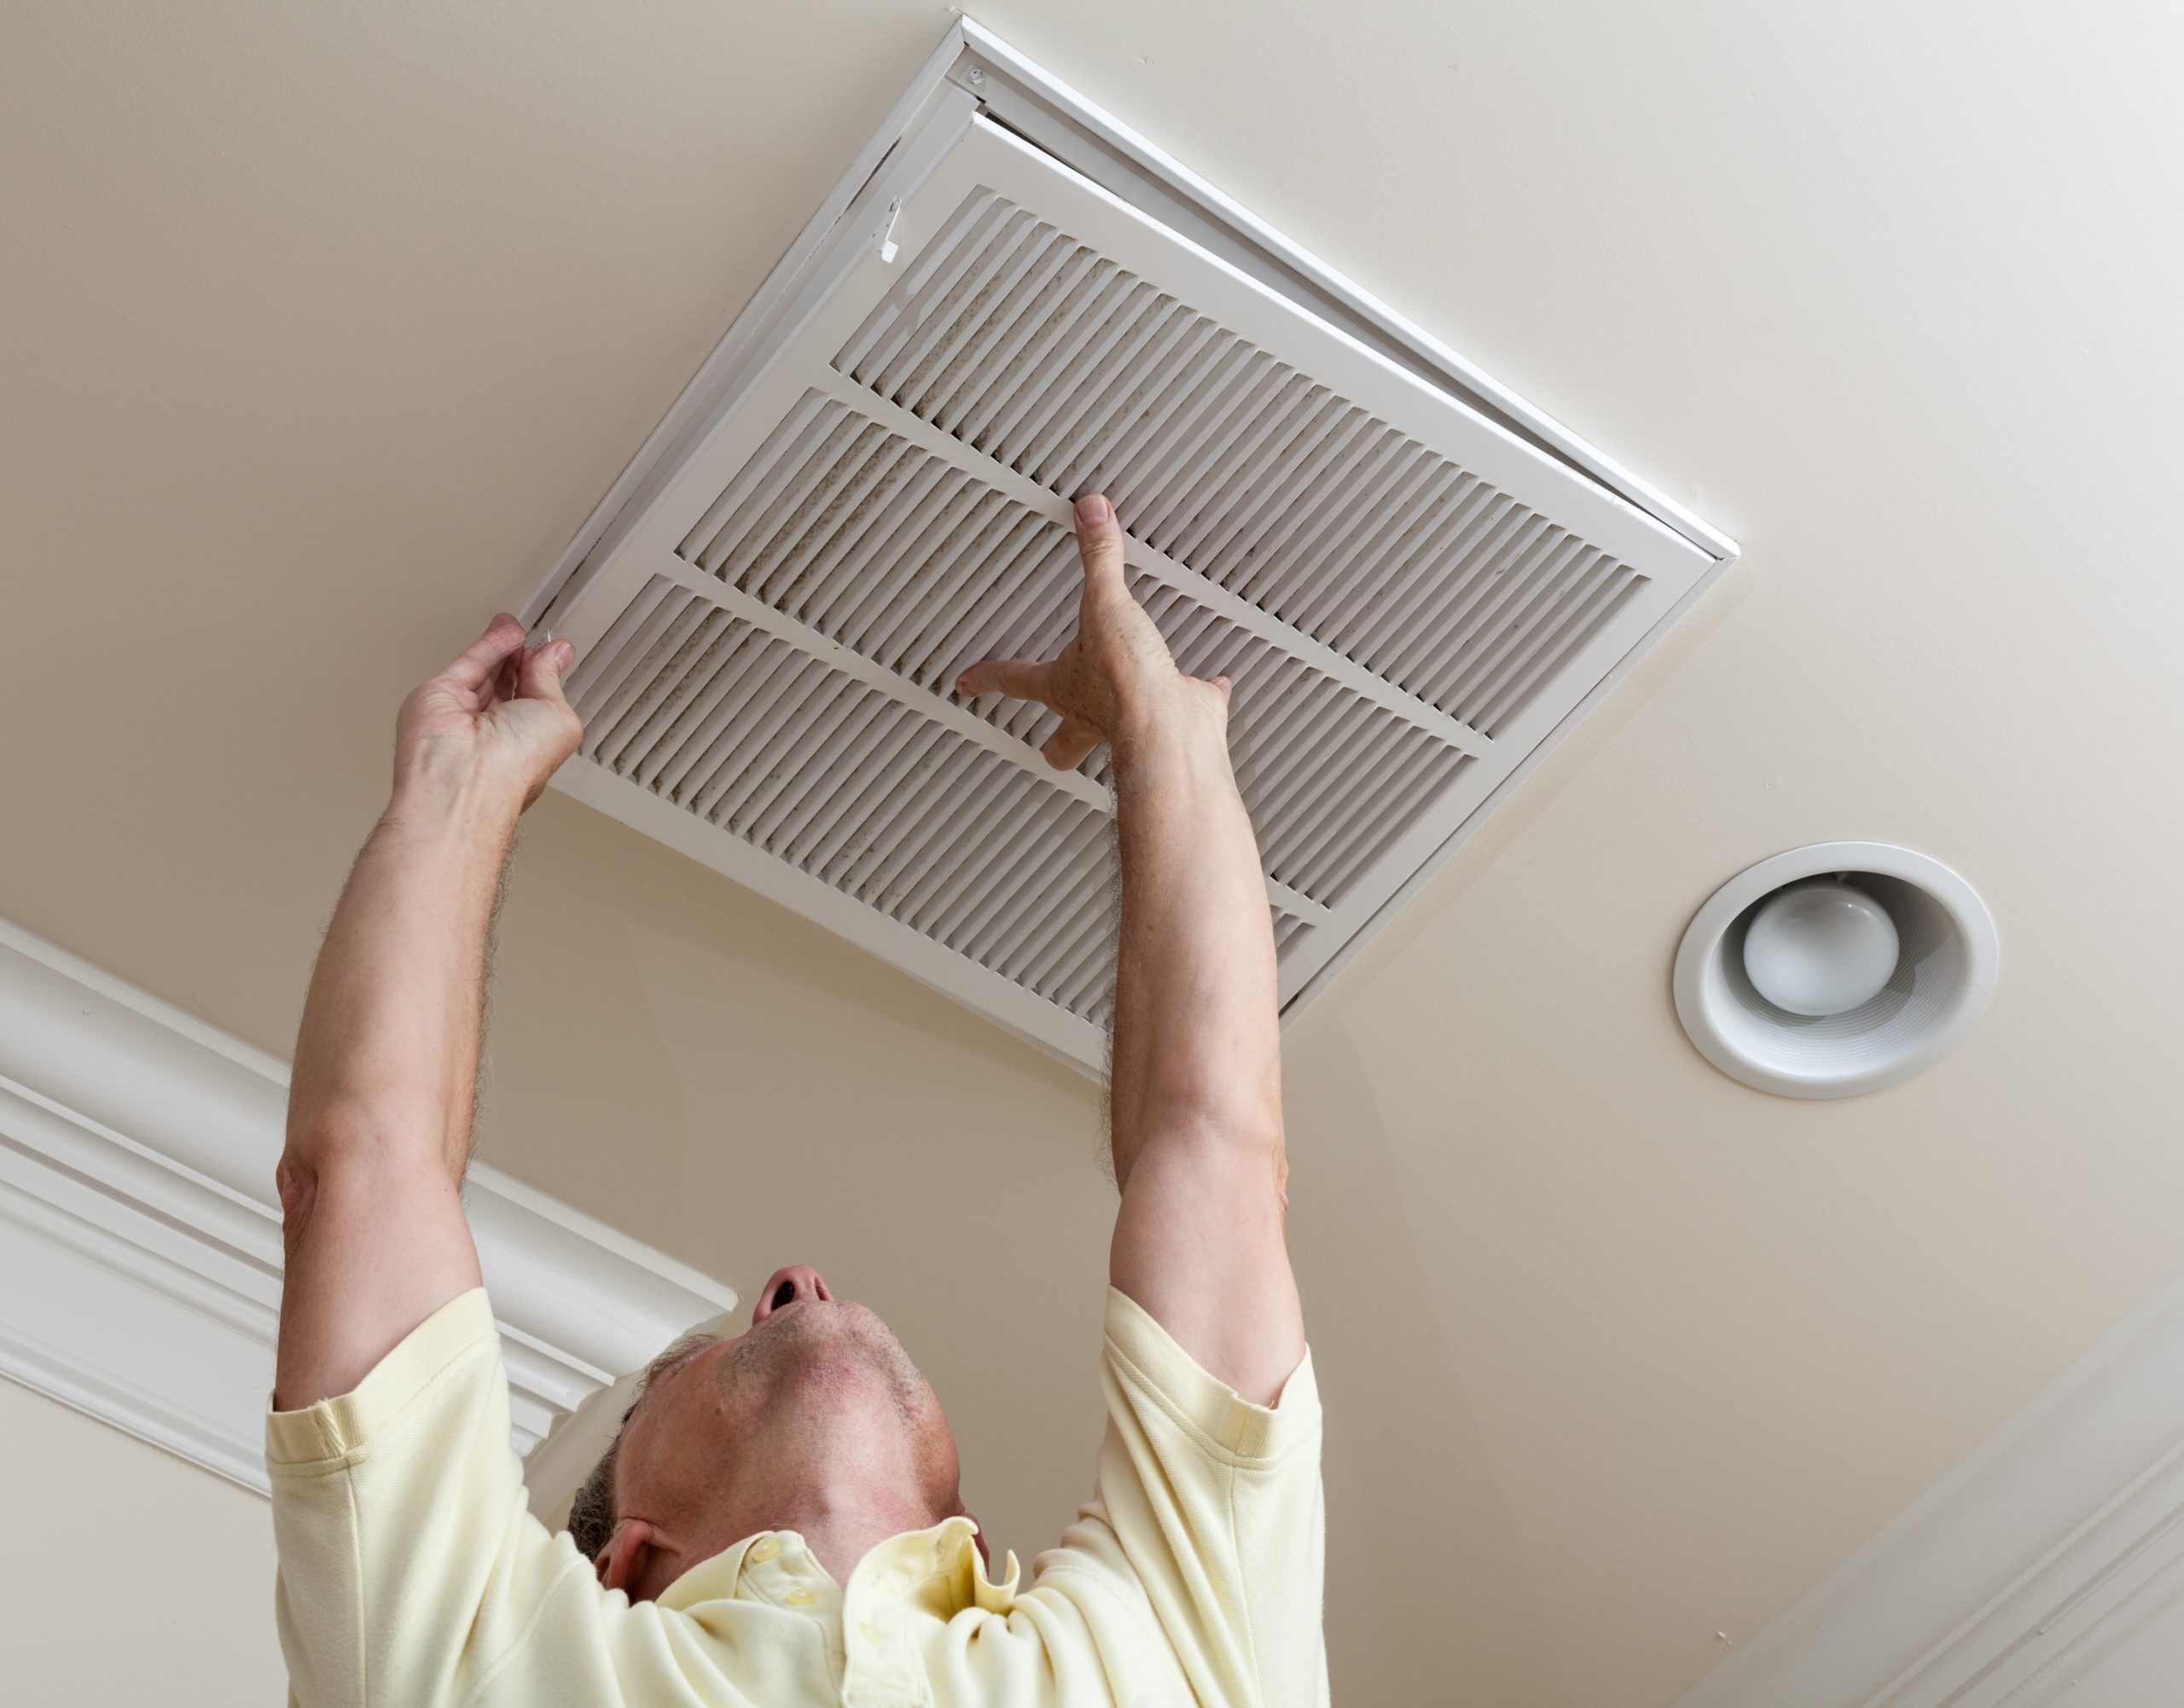 Coronavirus and HVAC system cleaning – how are they related?